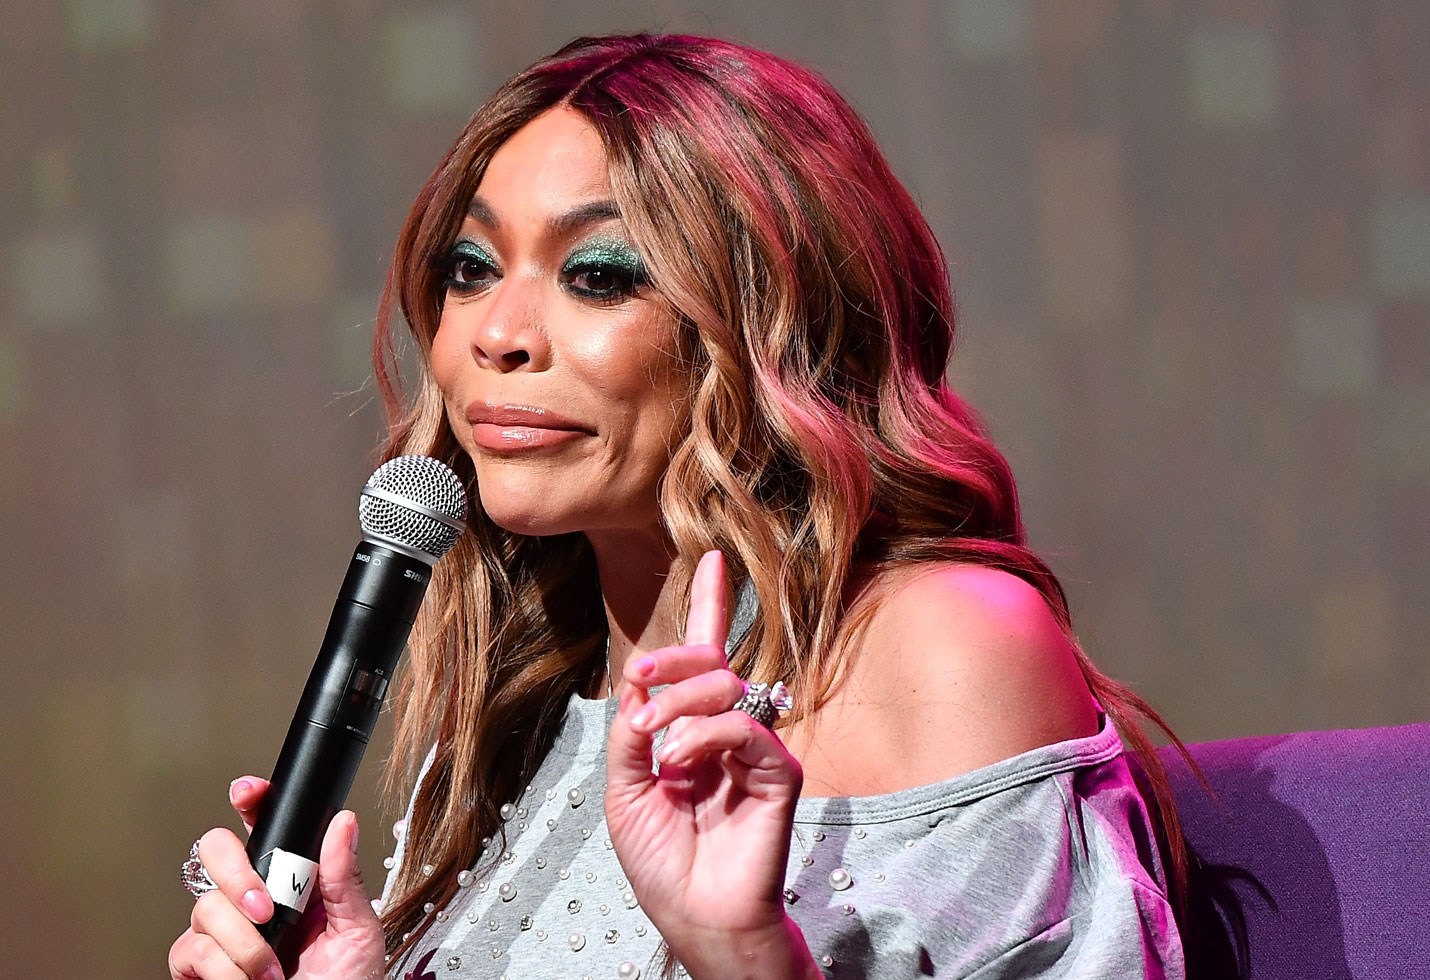 Wendy williams hiatus health issues sober home husband kevin hunter